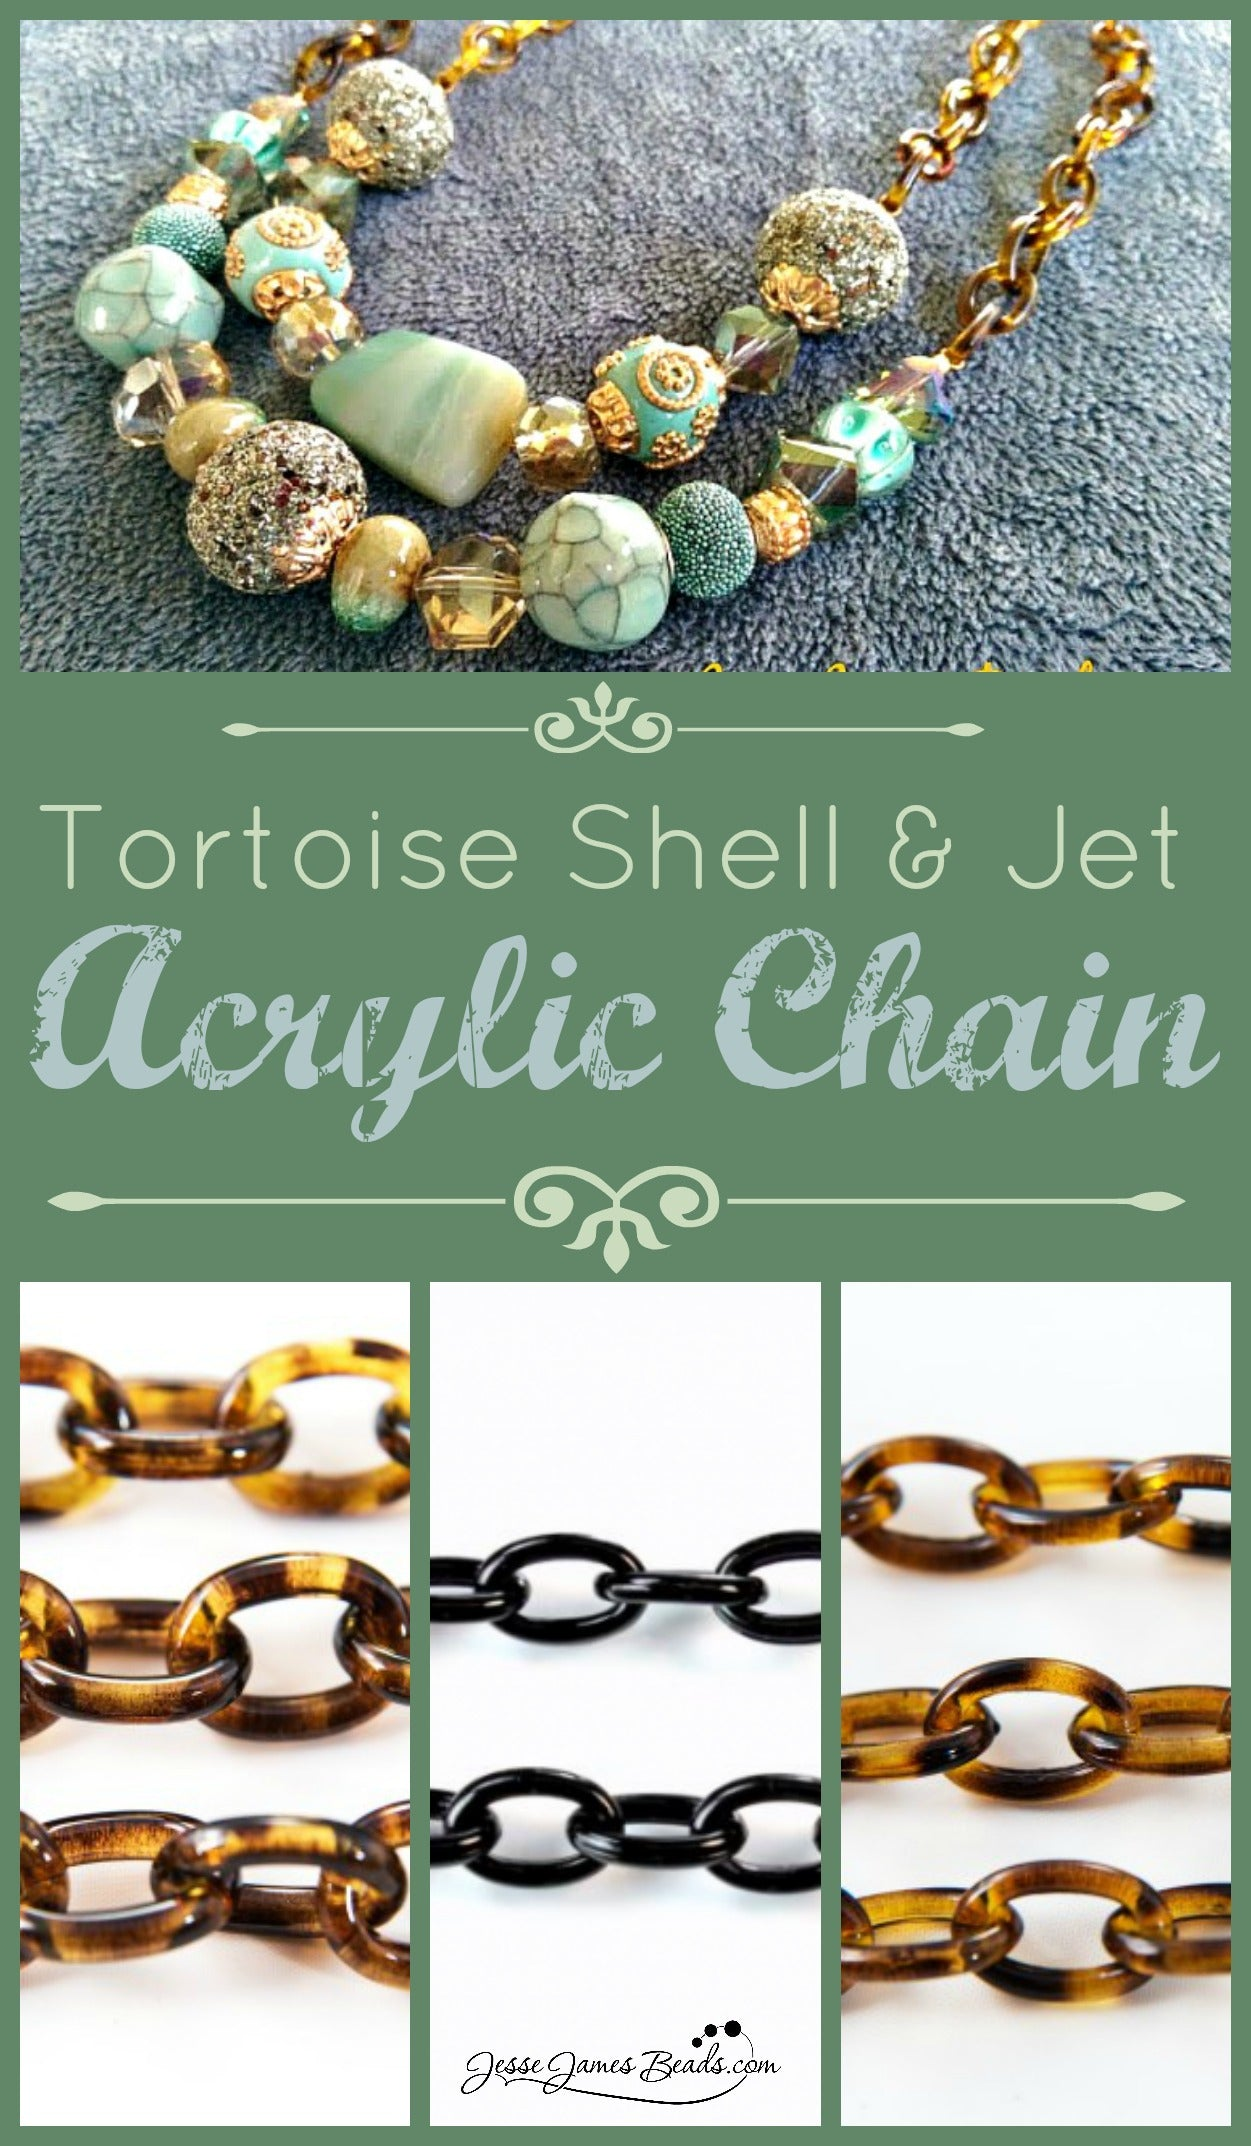 Acrylic chain for $9.99 per foot